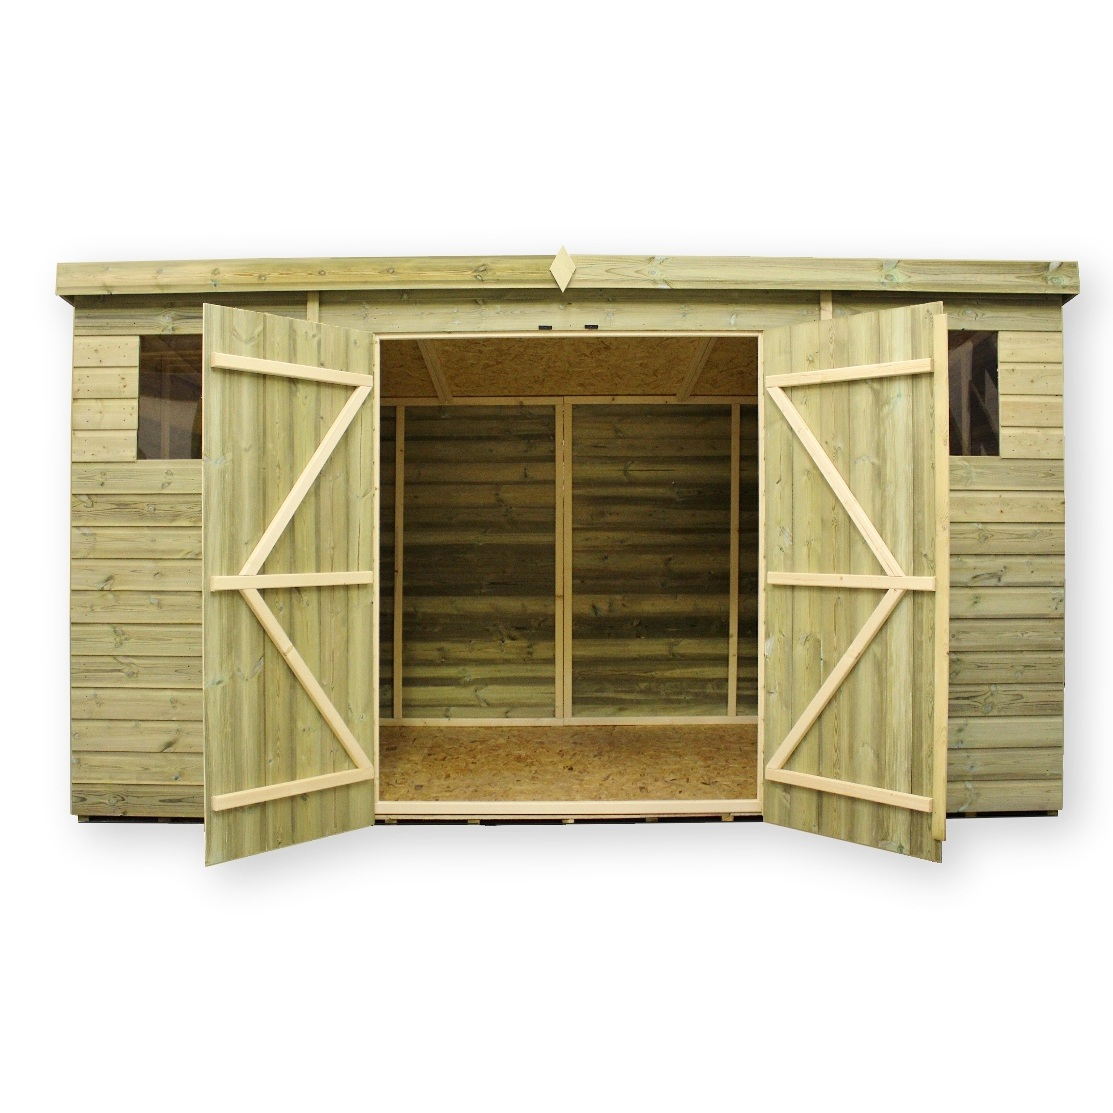 Fernando 6 x 10 shed plans 8x4 deodorant for Garden shed 5 x 4